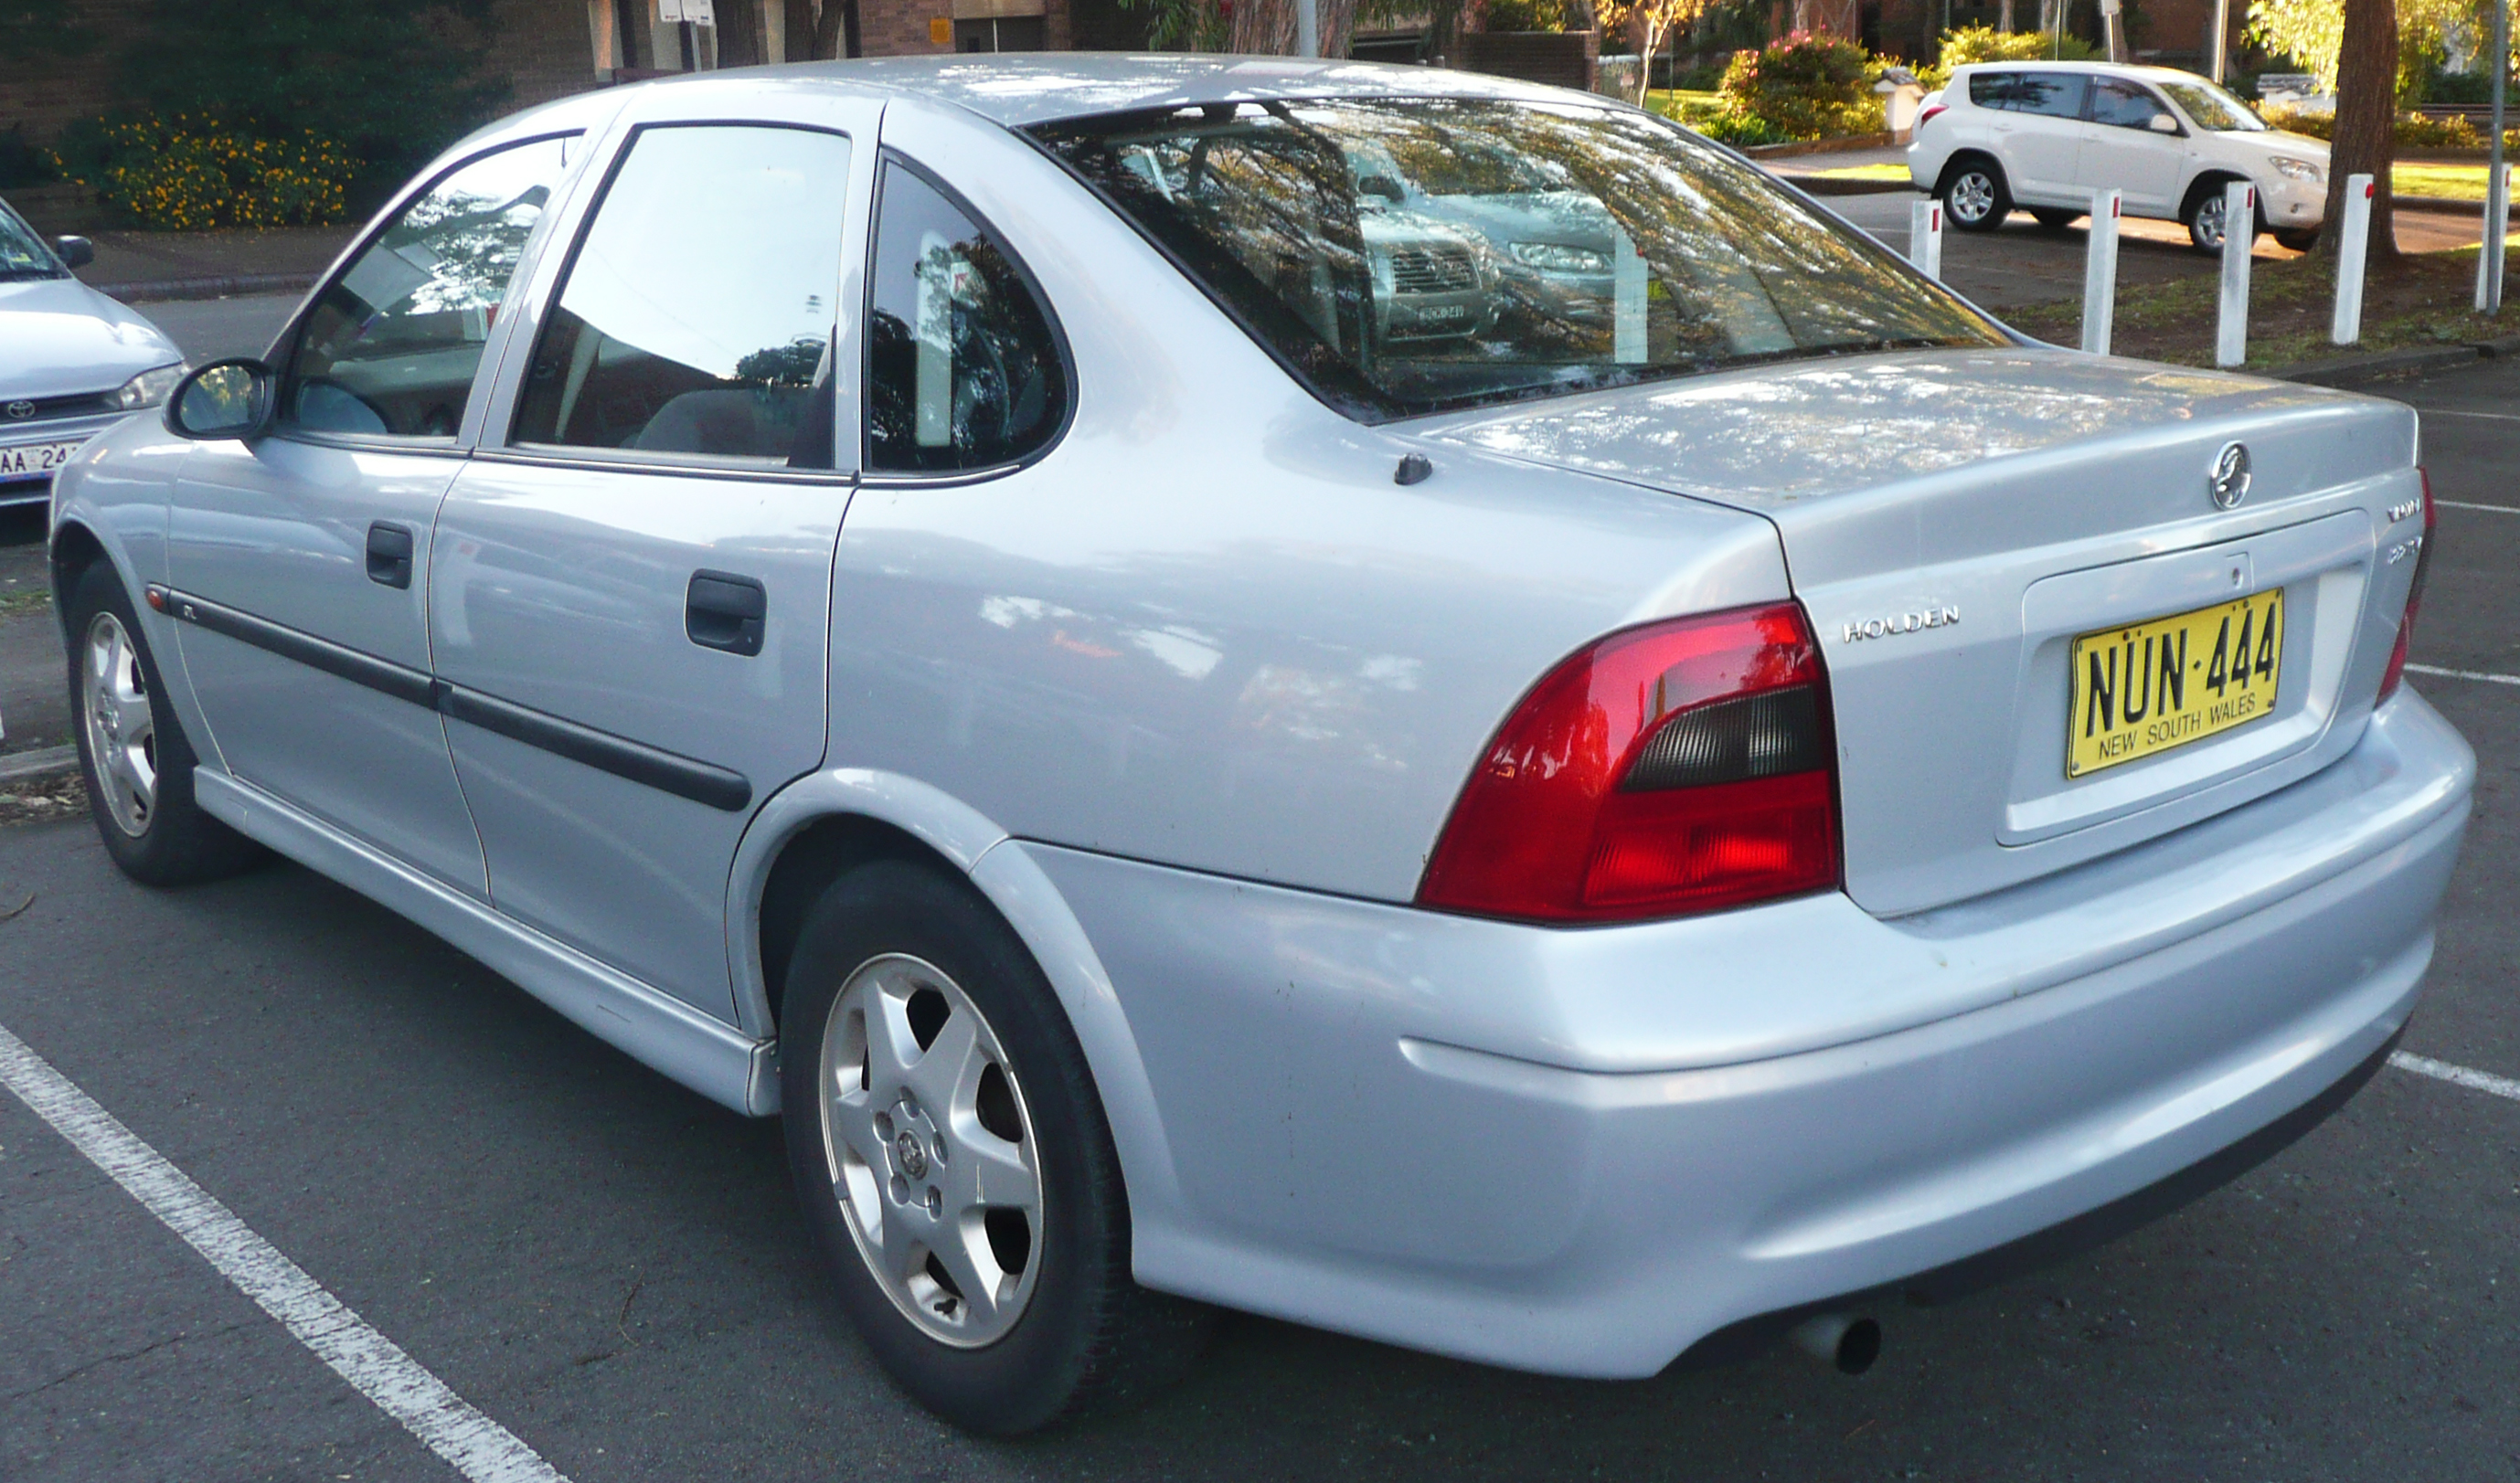 Cars holden vectra (b) 2003